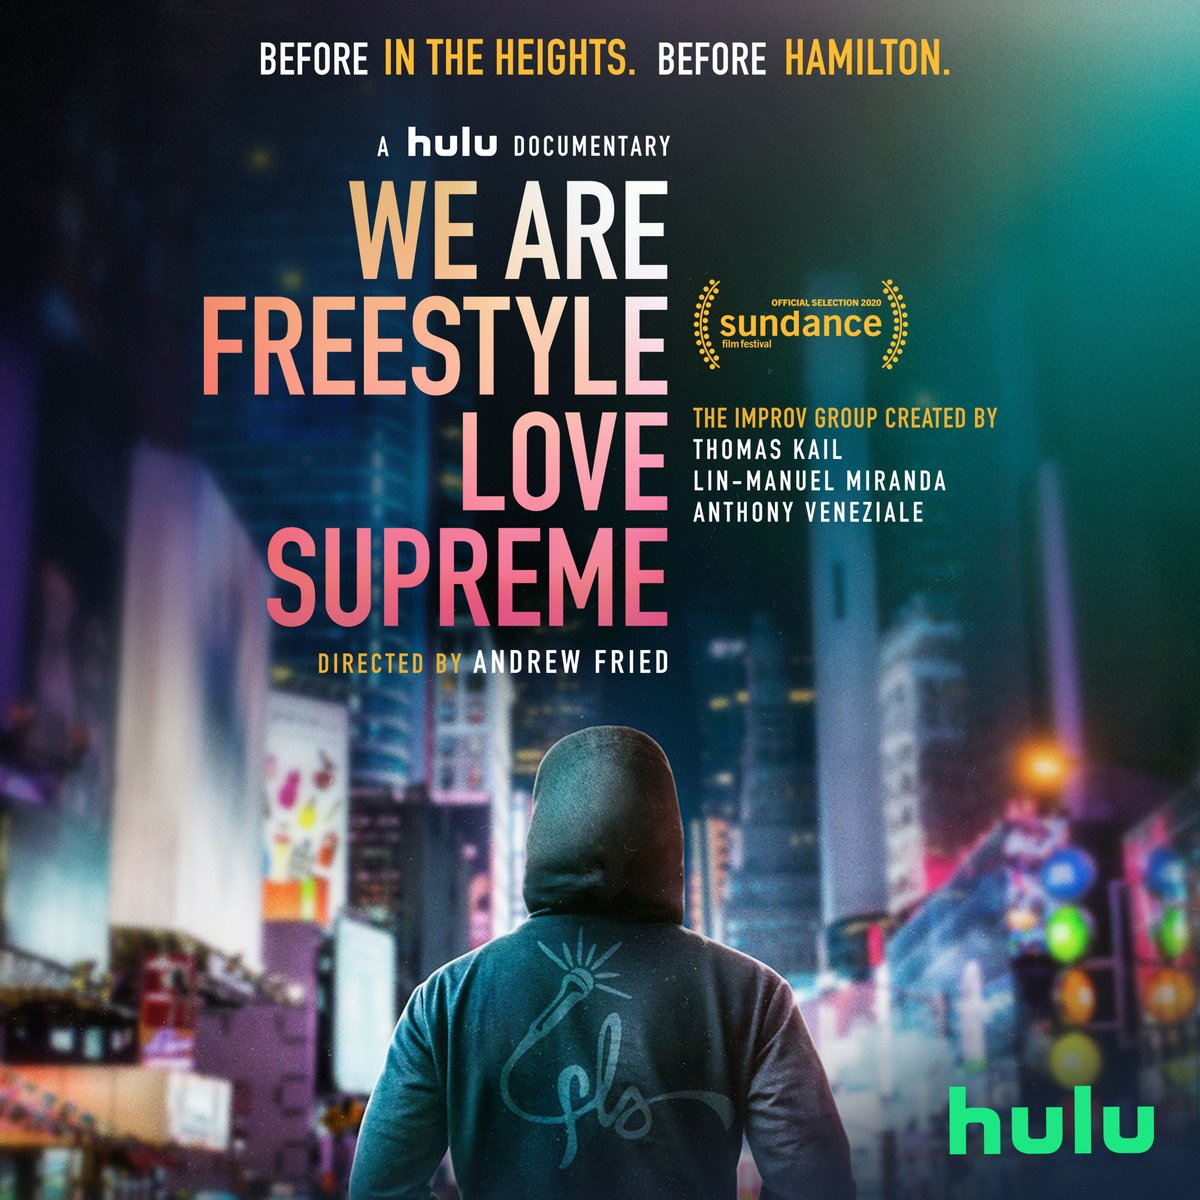 #WeAreFreestyleLoveSupreme comes to @Hulu on June 5 and weve got a trailer headed your way TOMORROW. Get ready 🎤